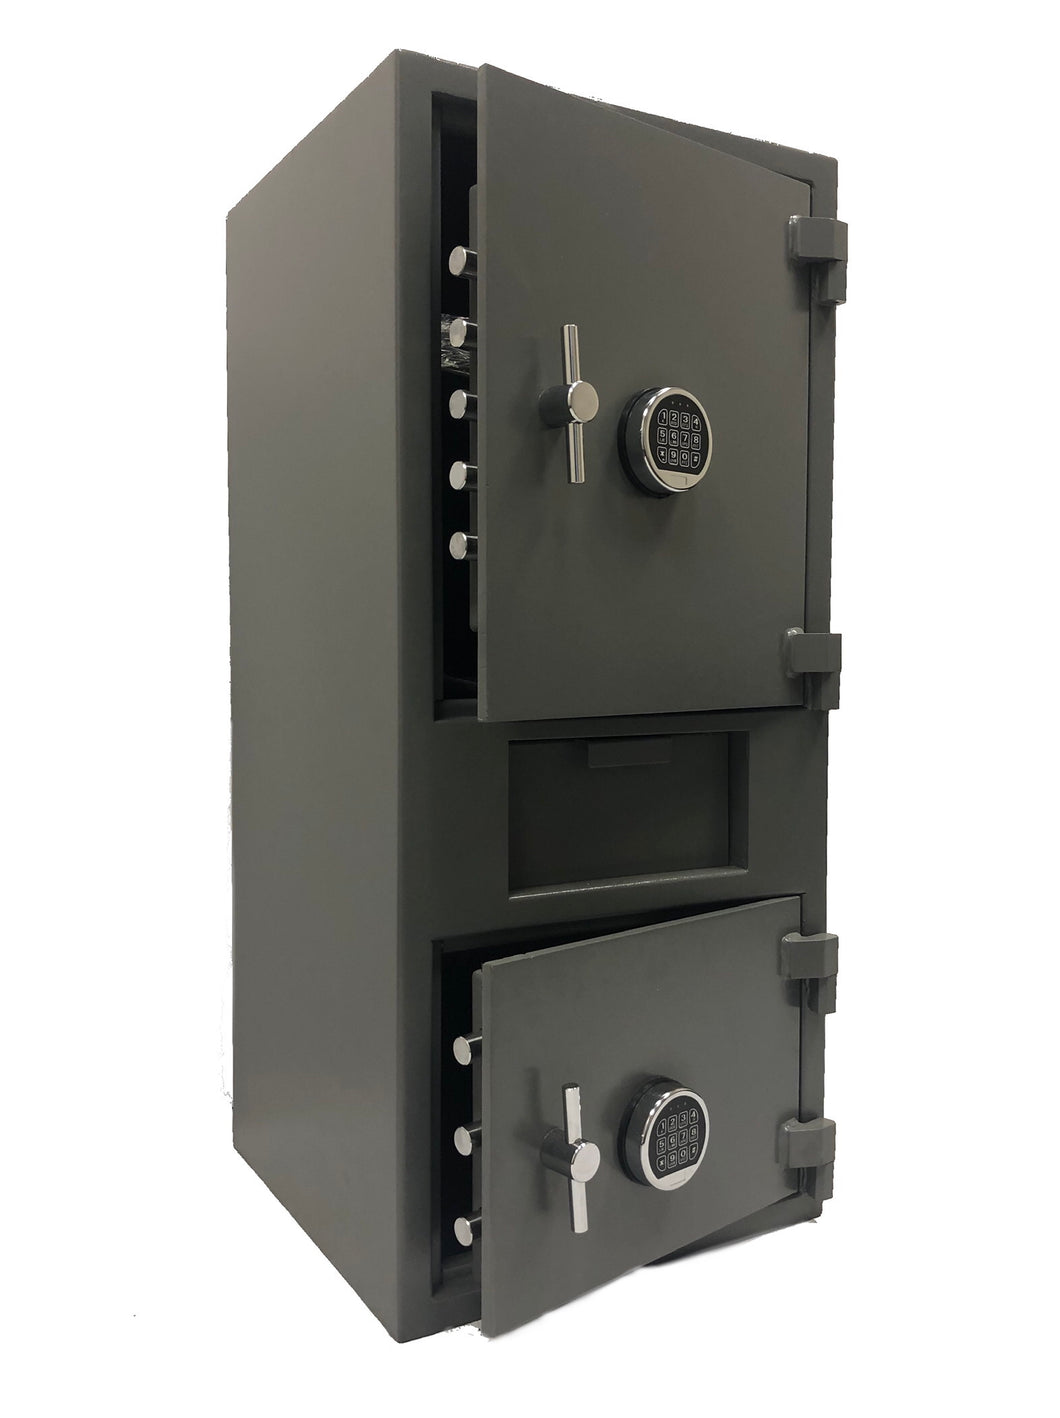 SOUTHEASTERN F4520EE double door drop slot depository safe with quick digital lock and back up key